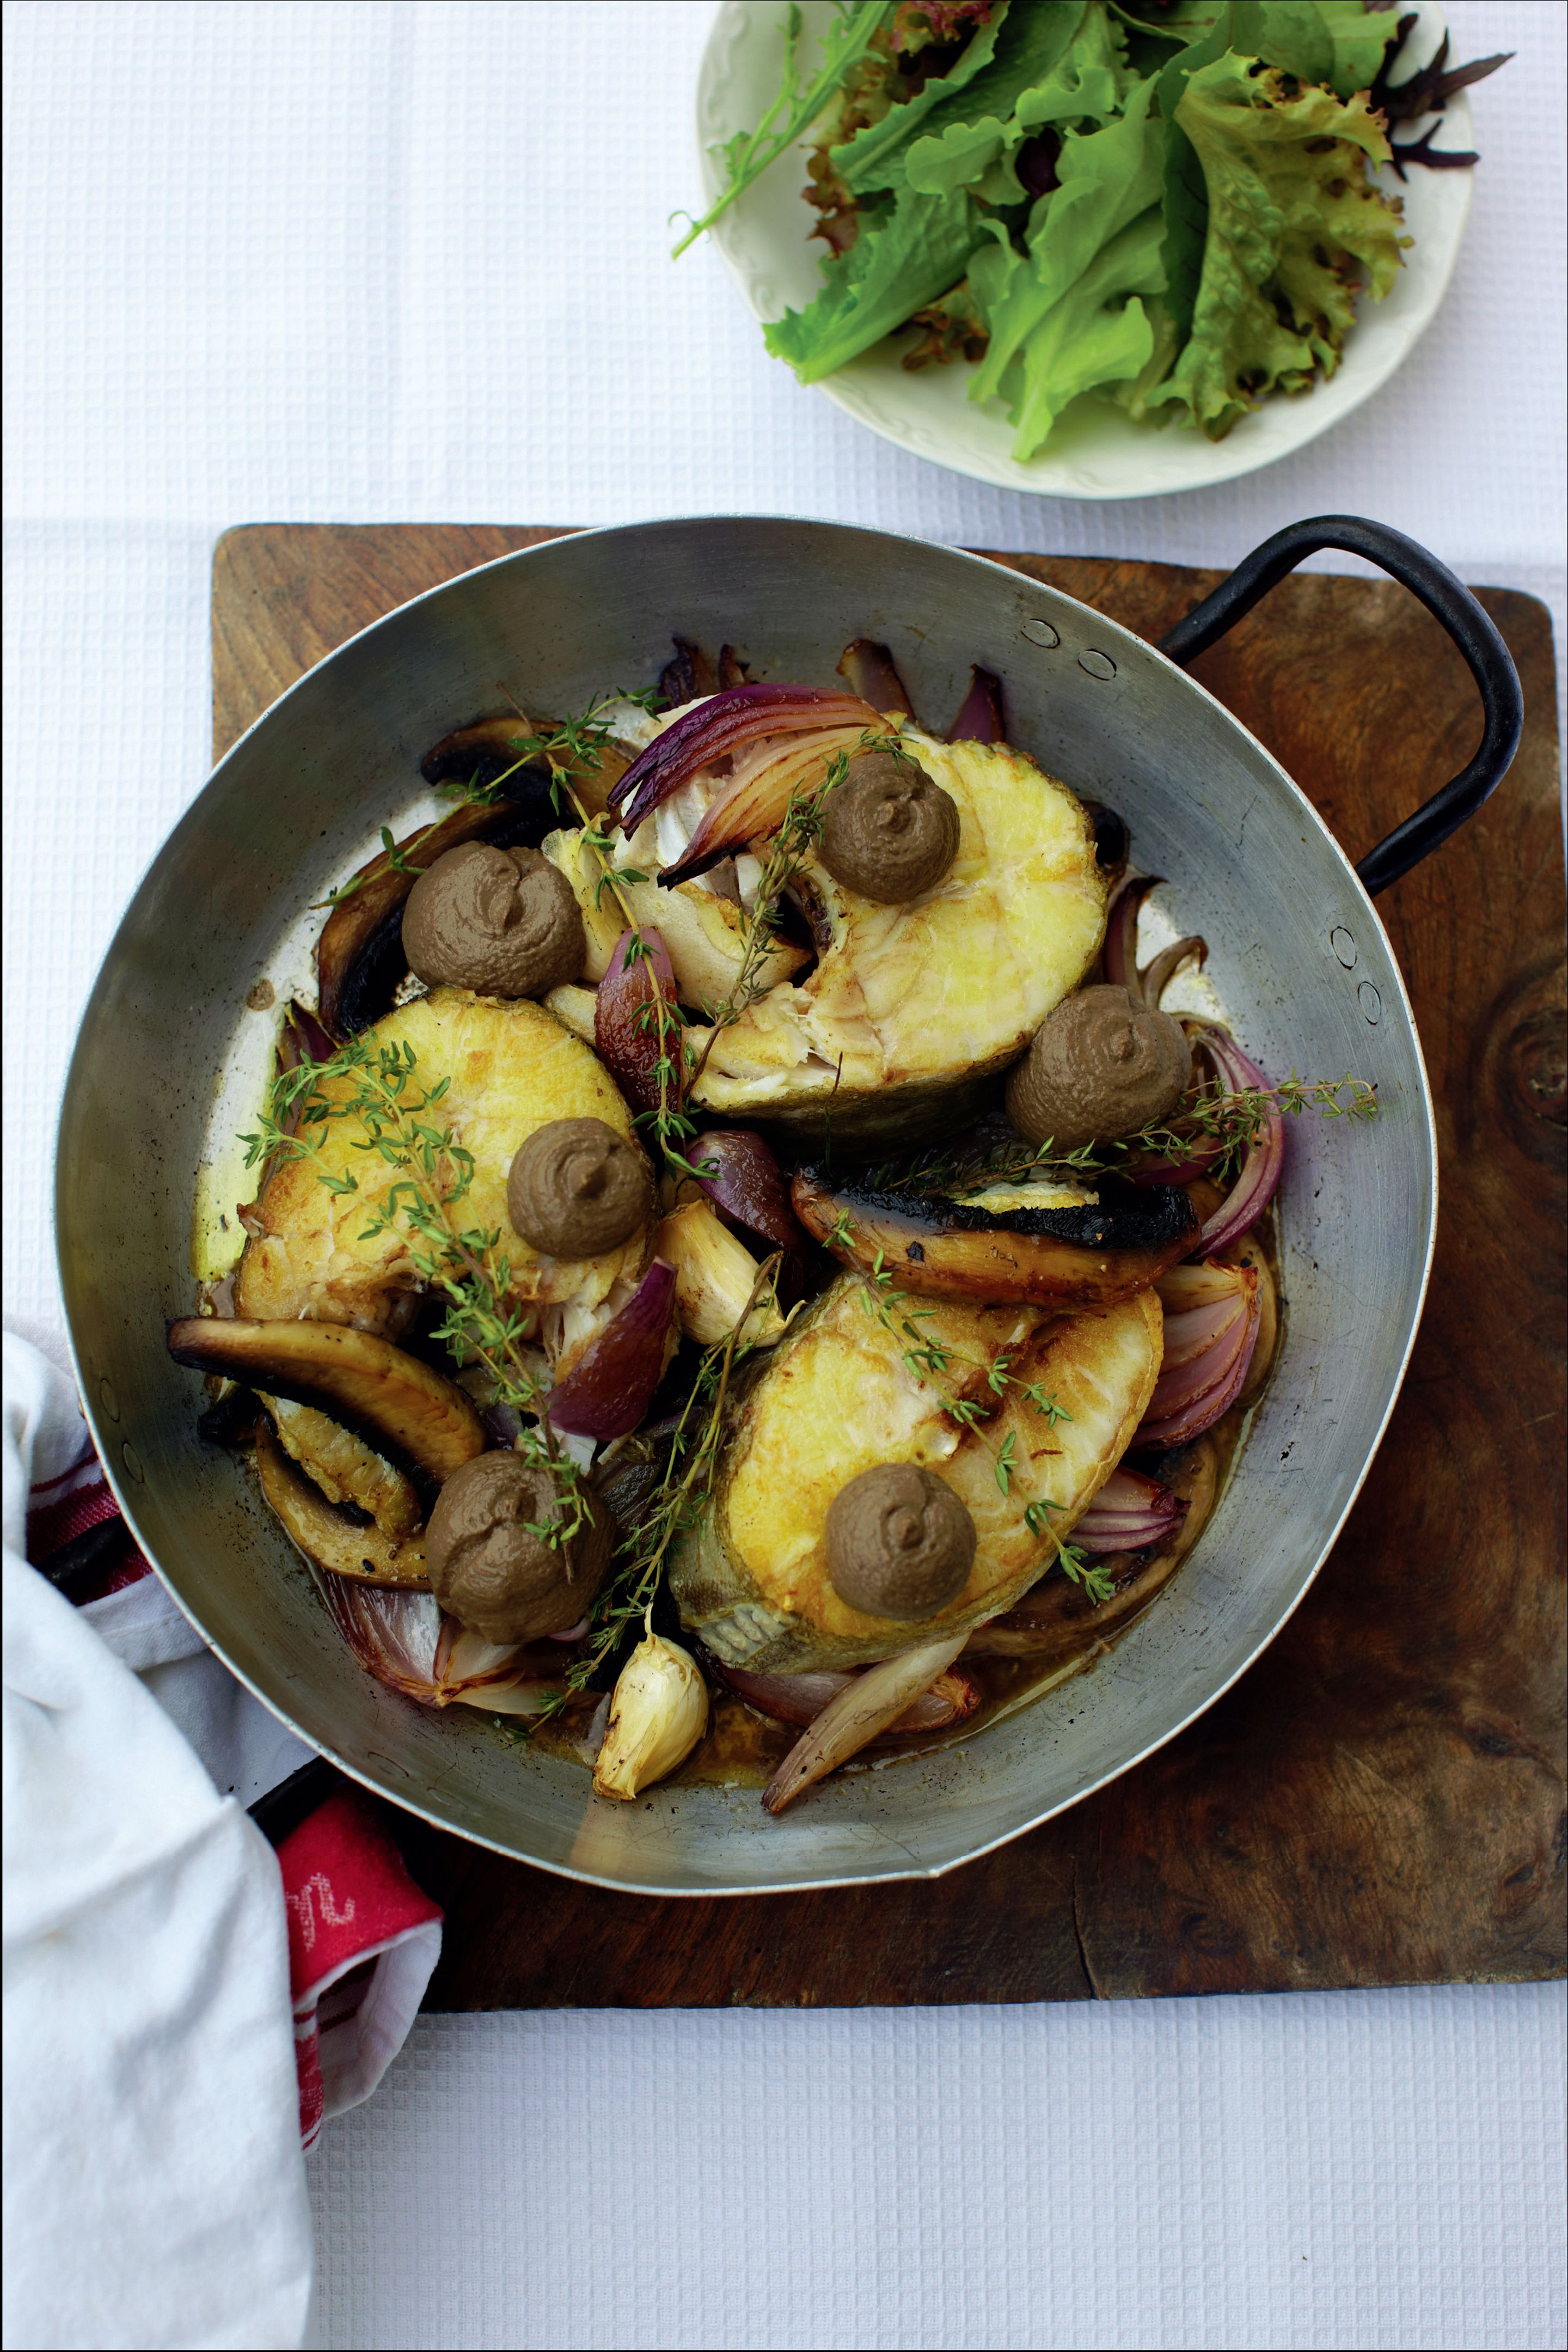 Baked cod steak with portabella mushrooms, red onions and thyme